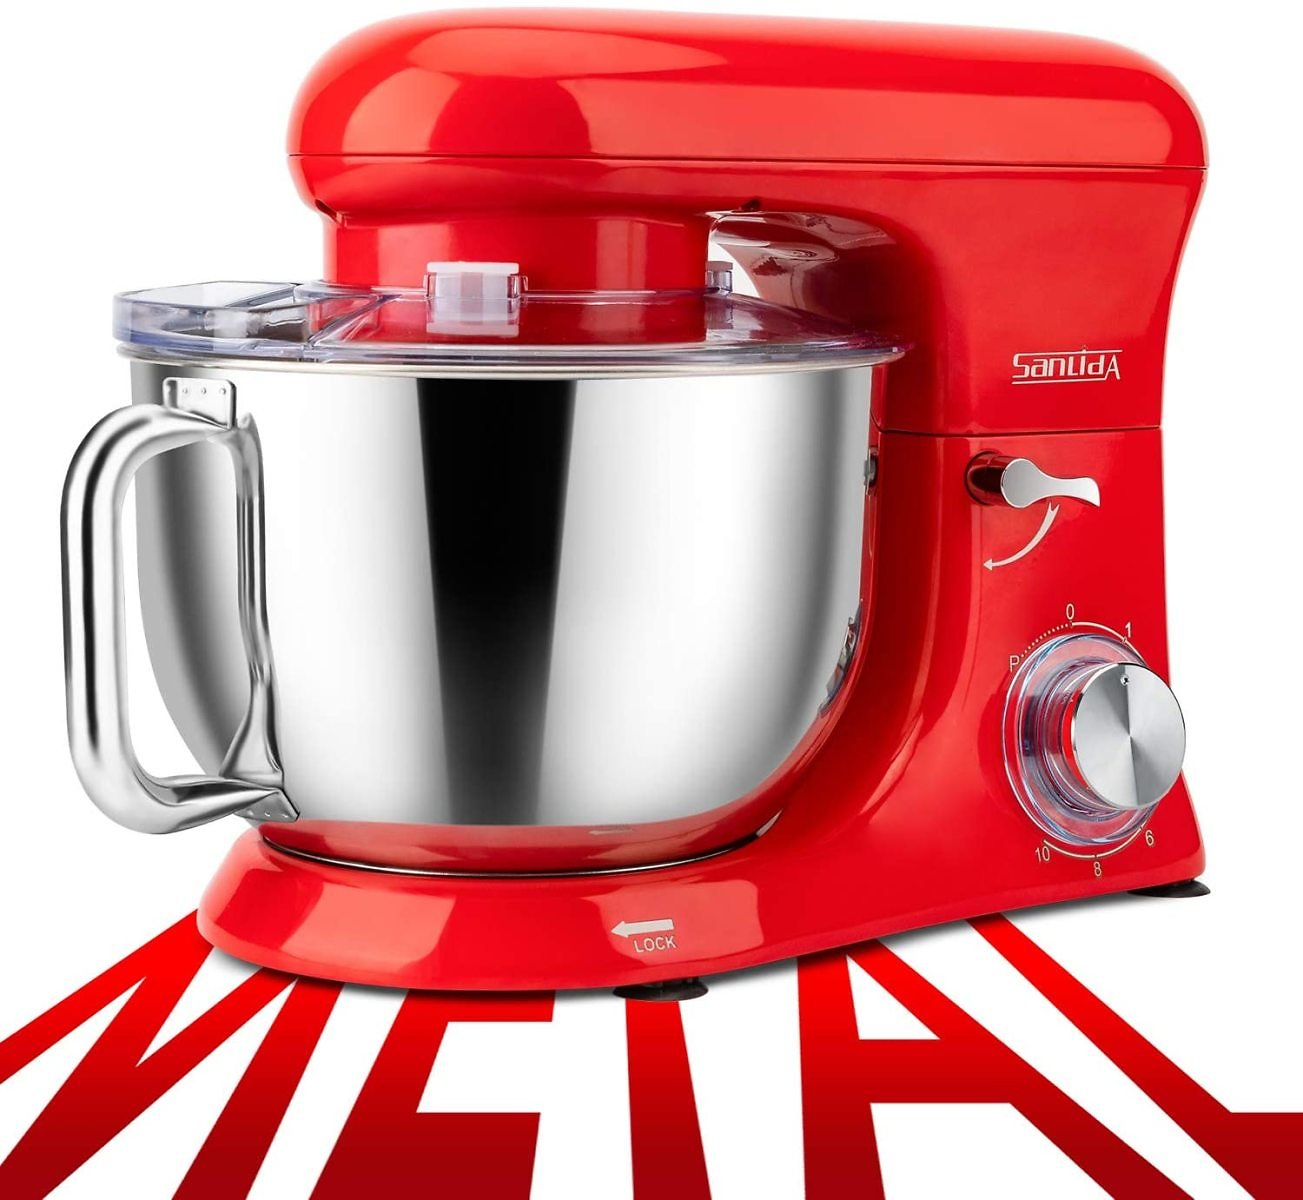 SanLidA 6.5 Qt All-Metal Stand Mixer with Dishwasher-Safe Dough Hooks for Most Home Cooks